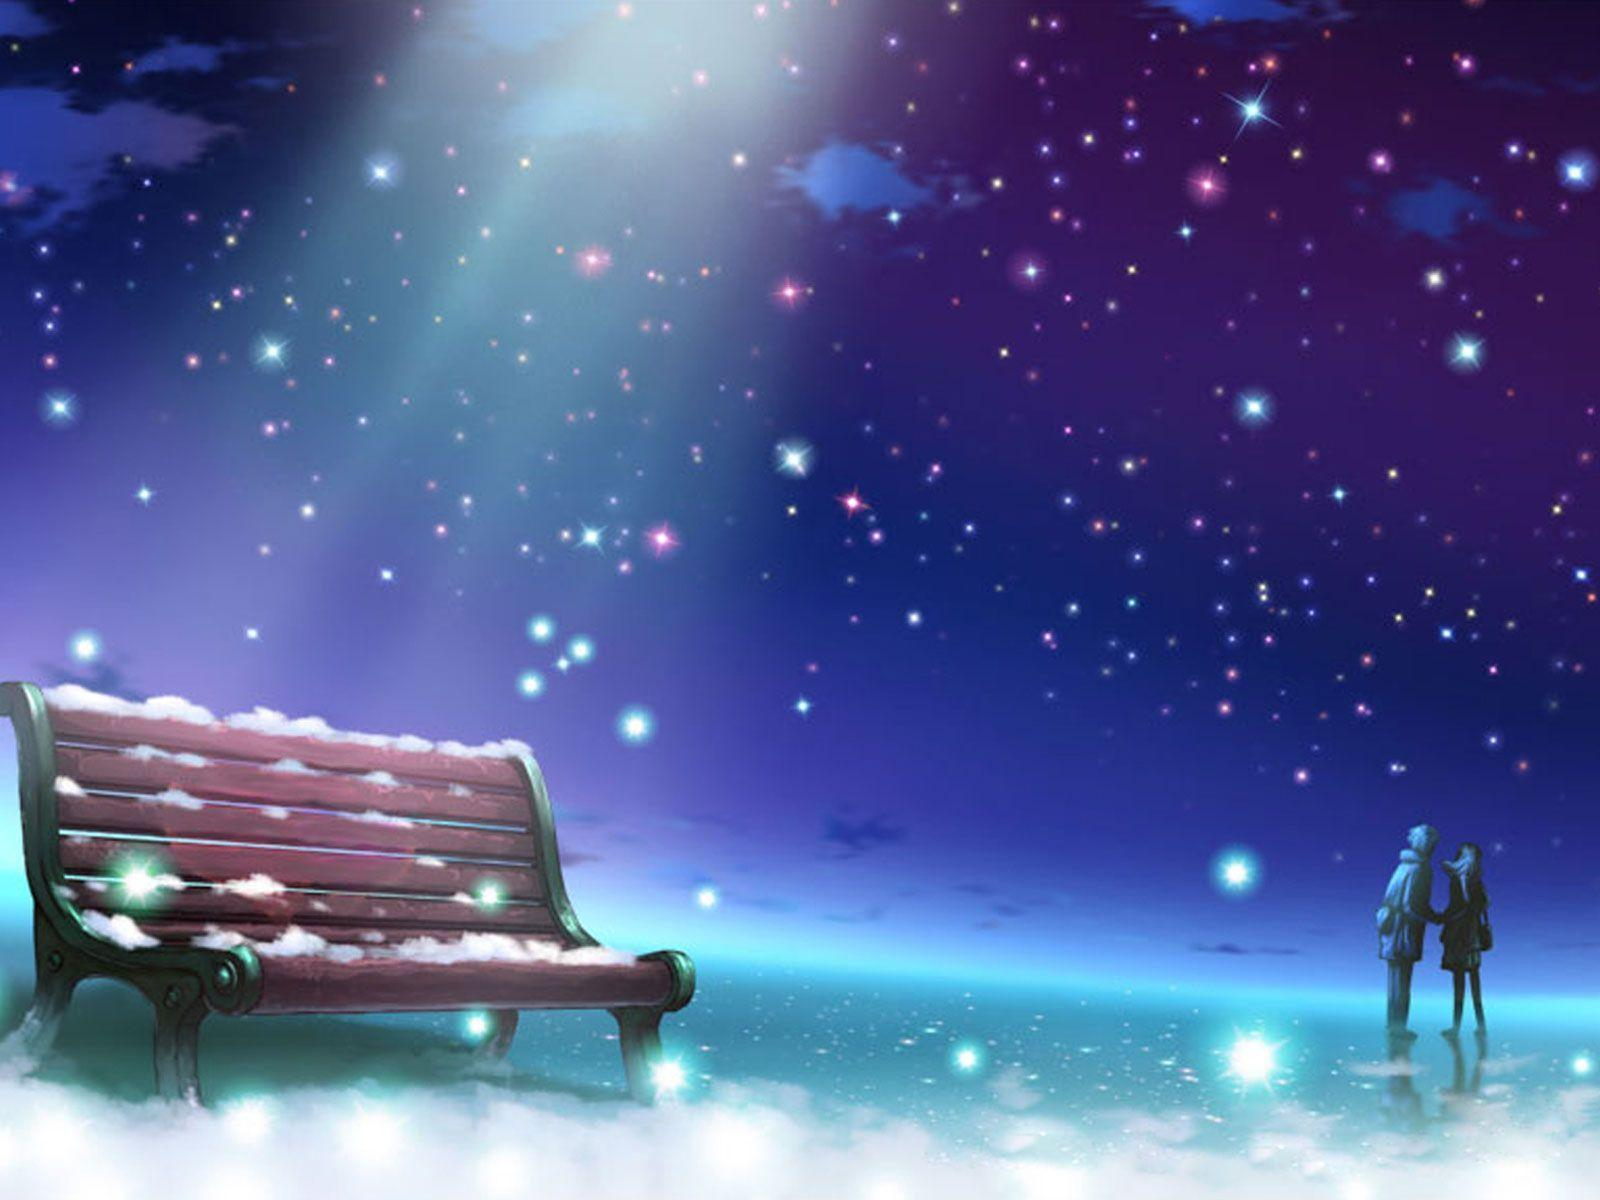 Anime Love Wallpapers: Romantic Anime Wallpapers